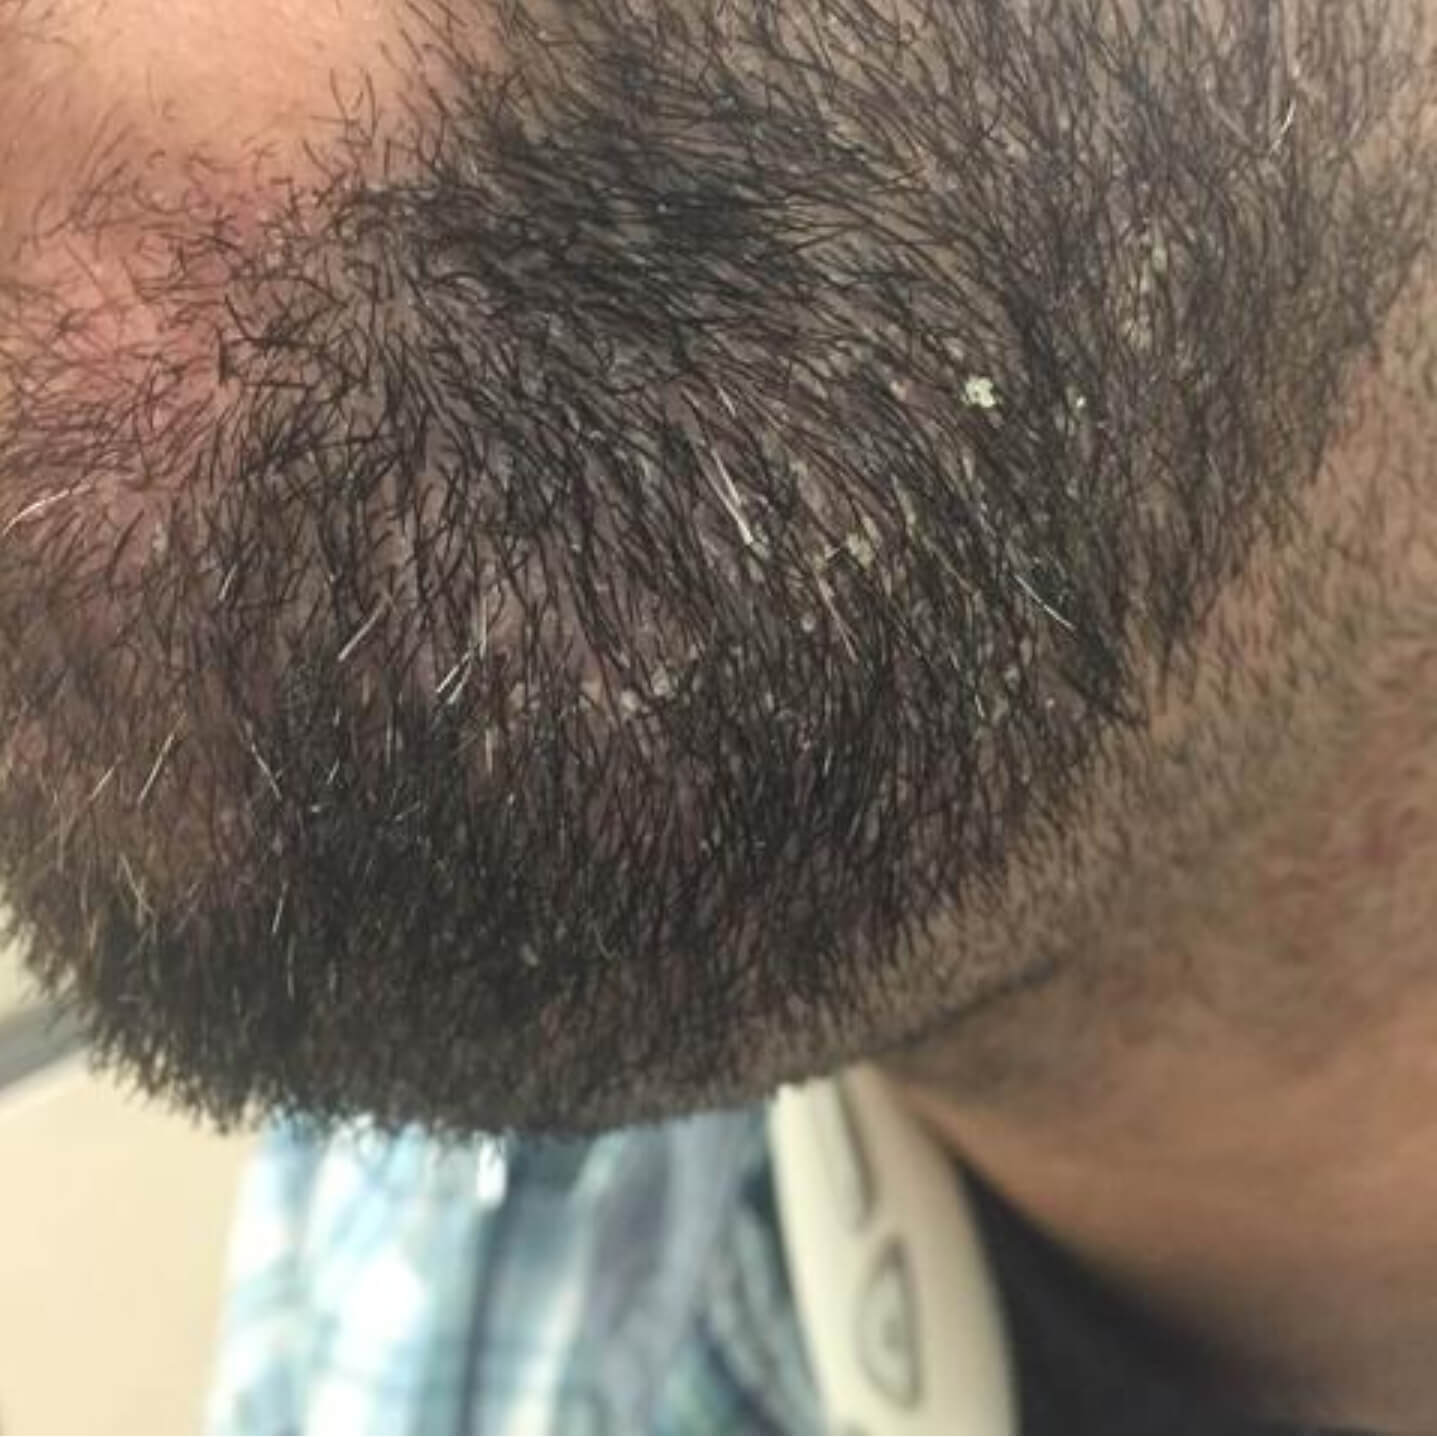 10 Reasons Why the Skin Under Your Beard Hurts: Stop Beard